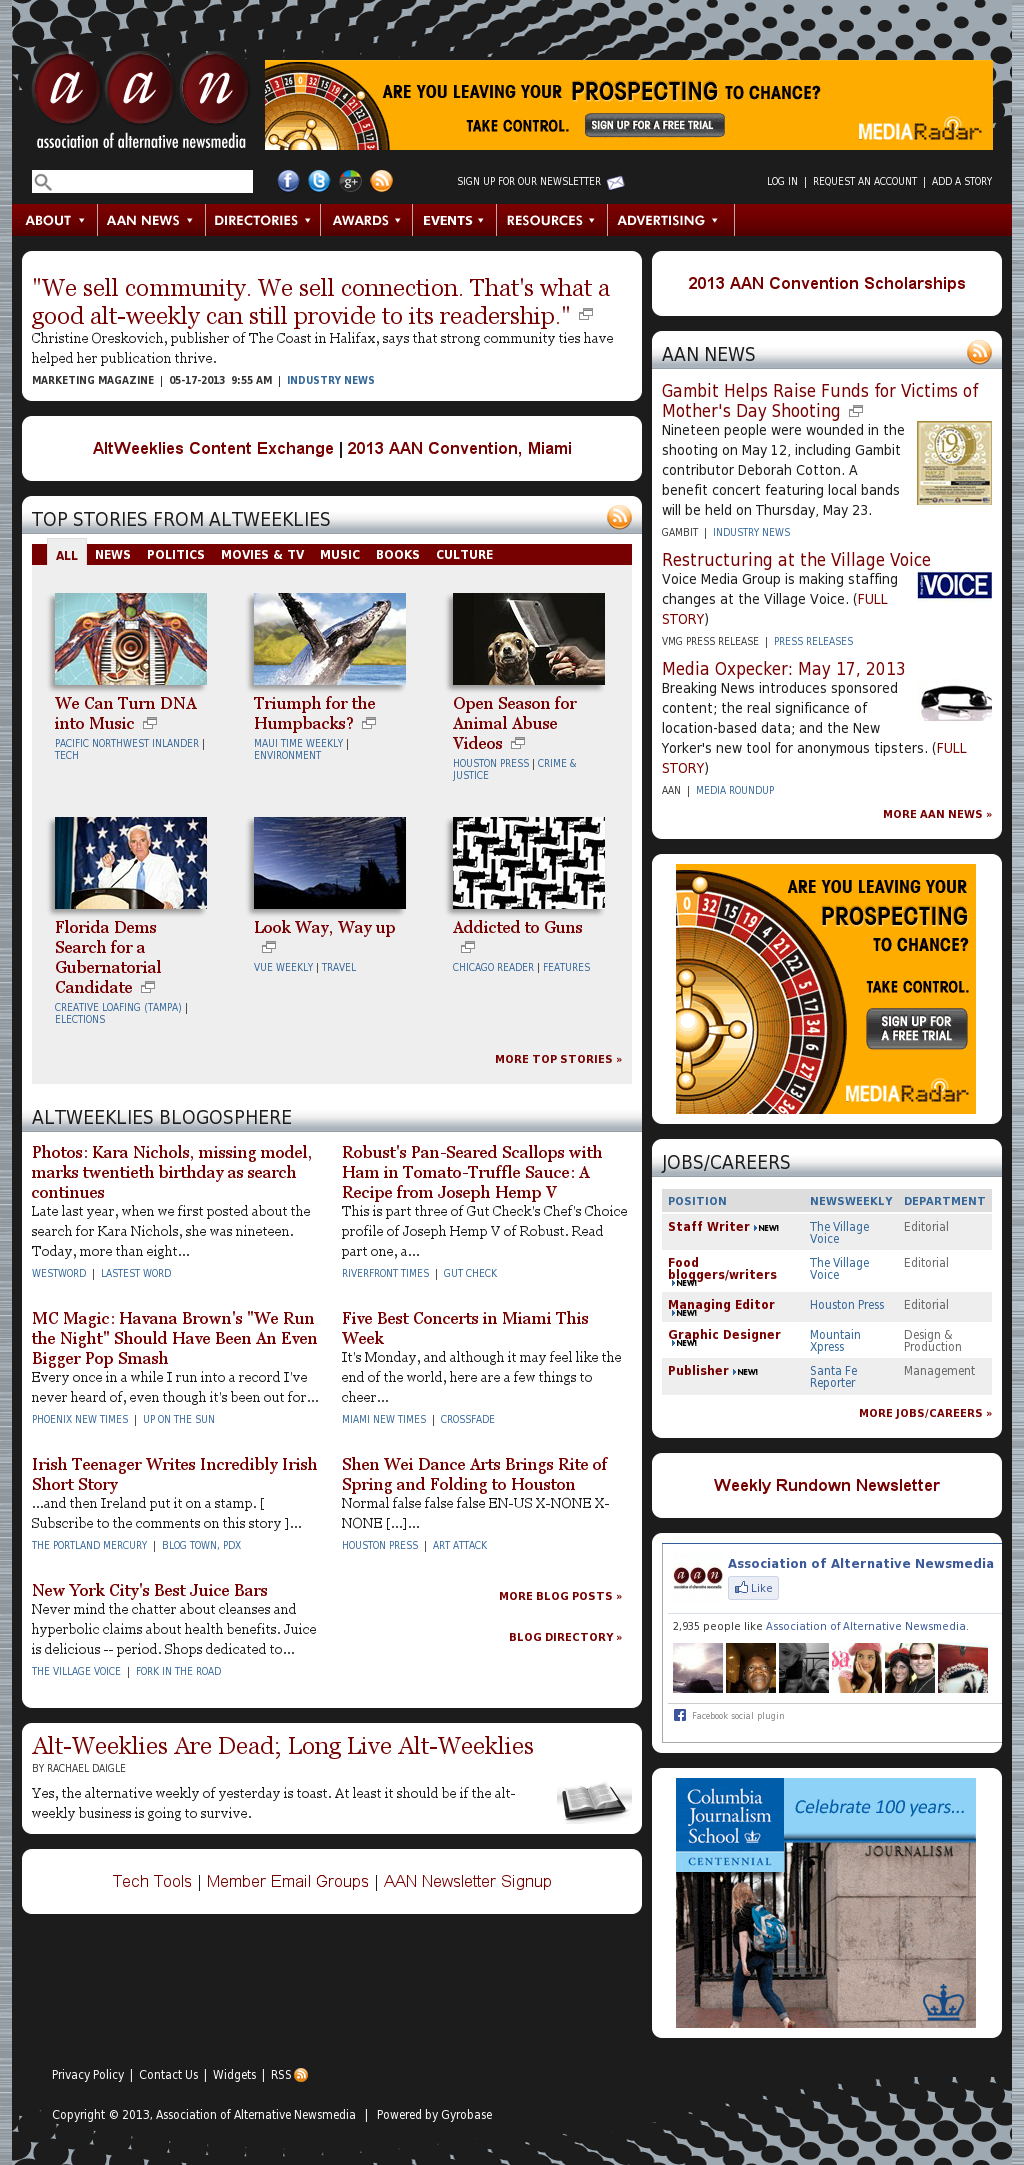 Association of Alternative Newsmedia at Tuesday May 21, 2013, midnight UTC